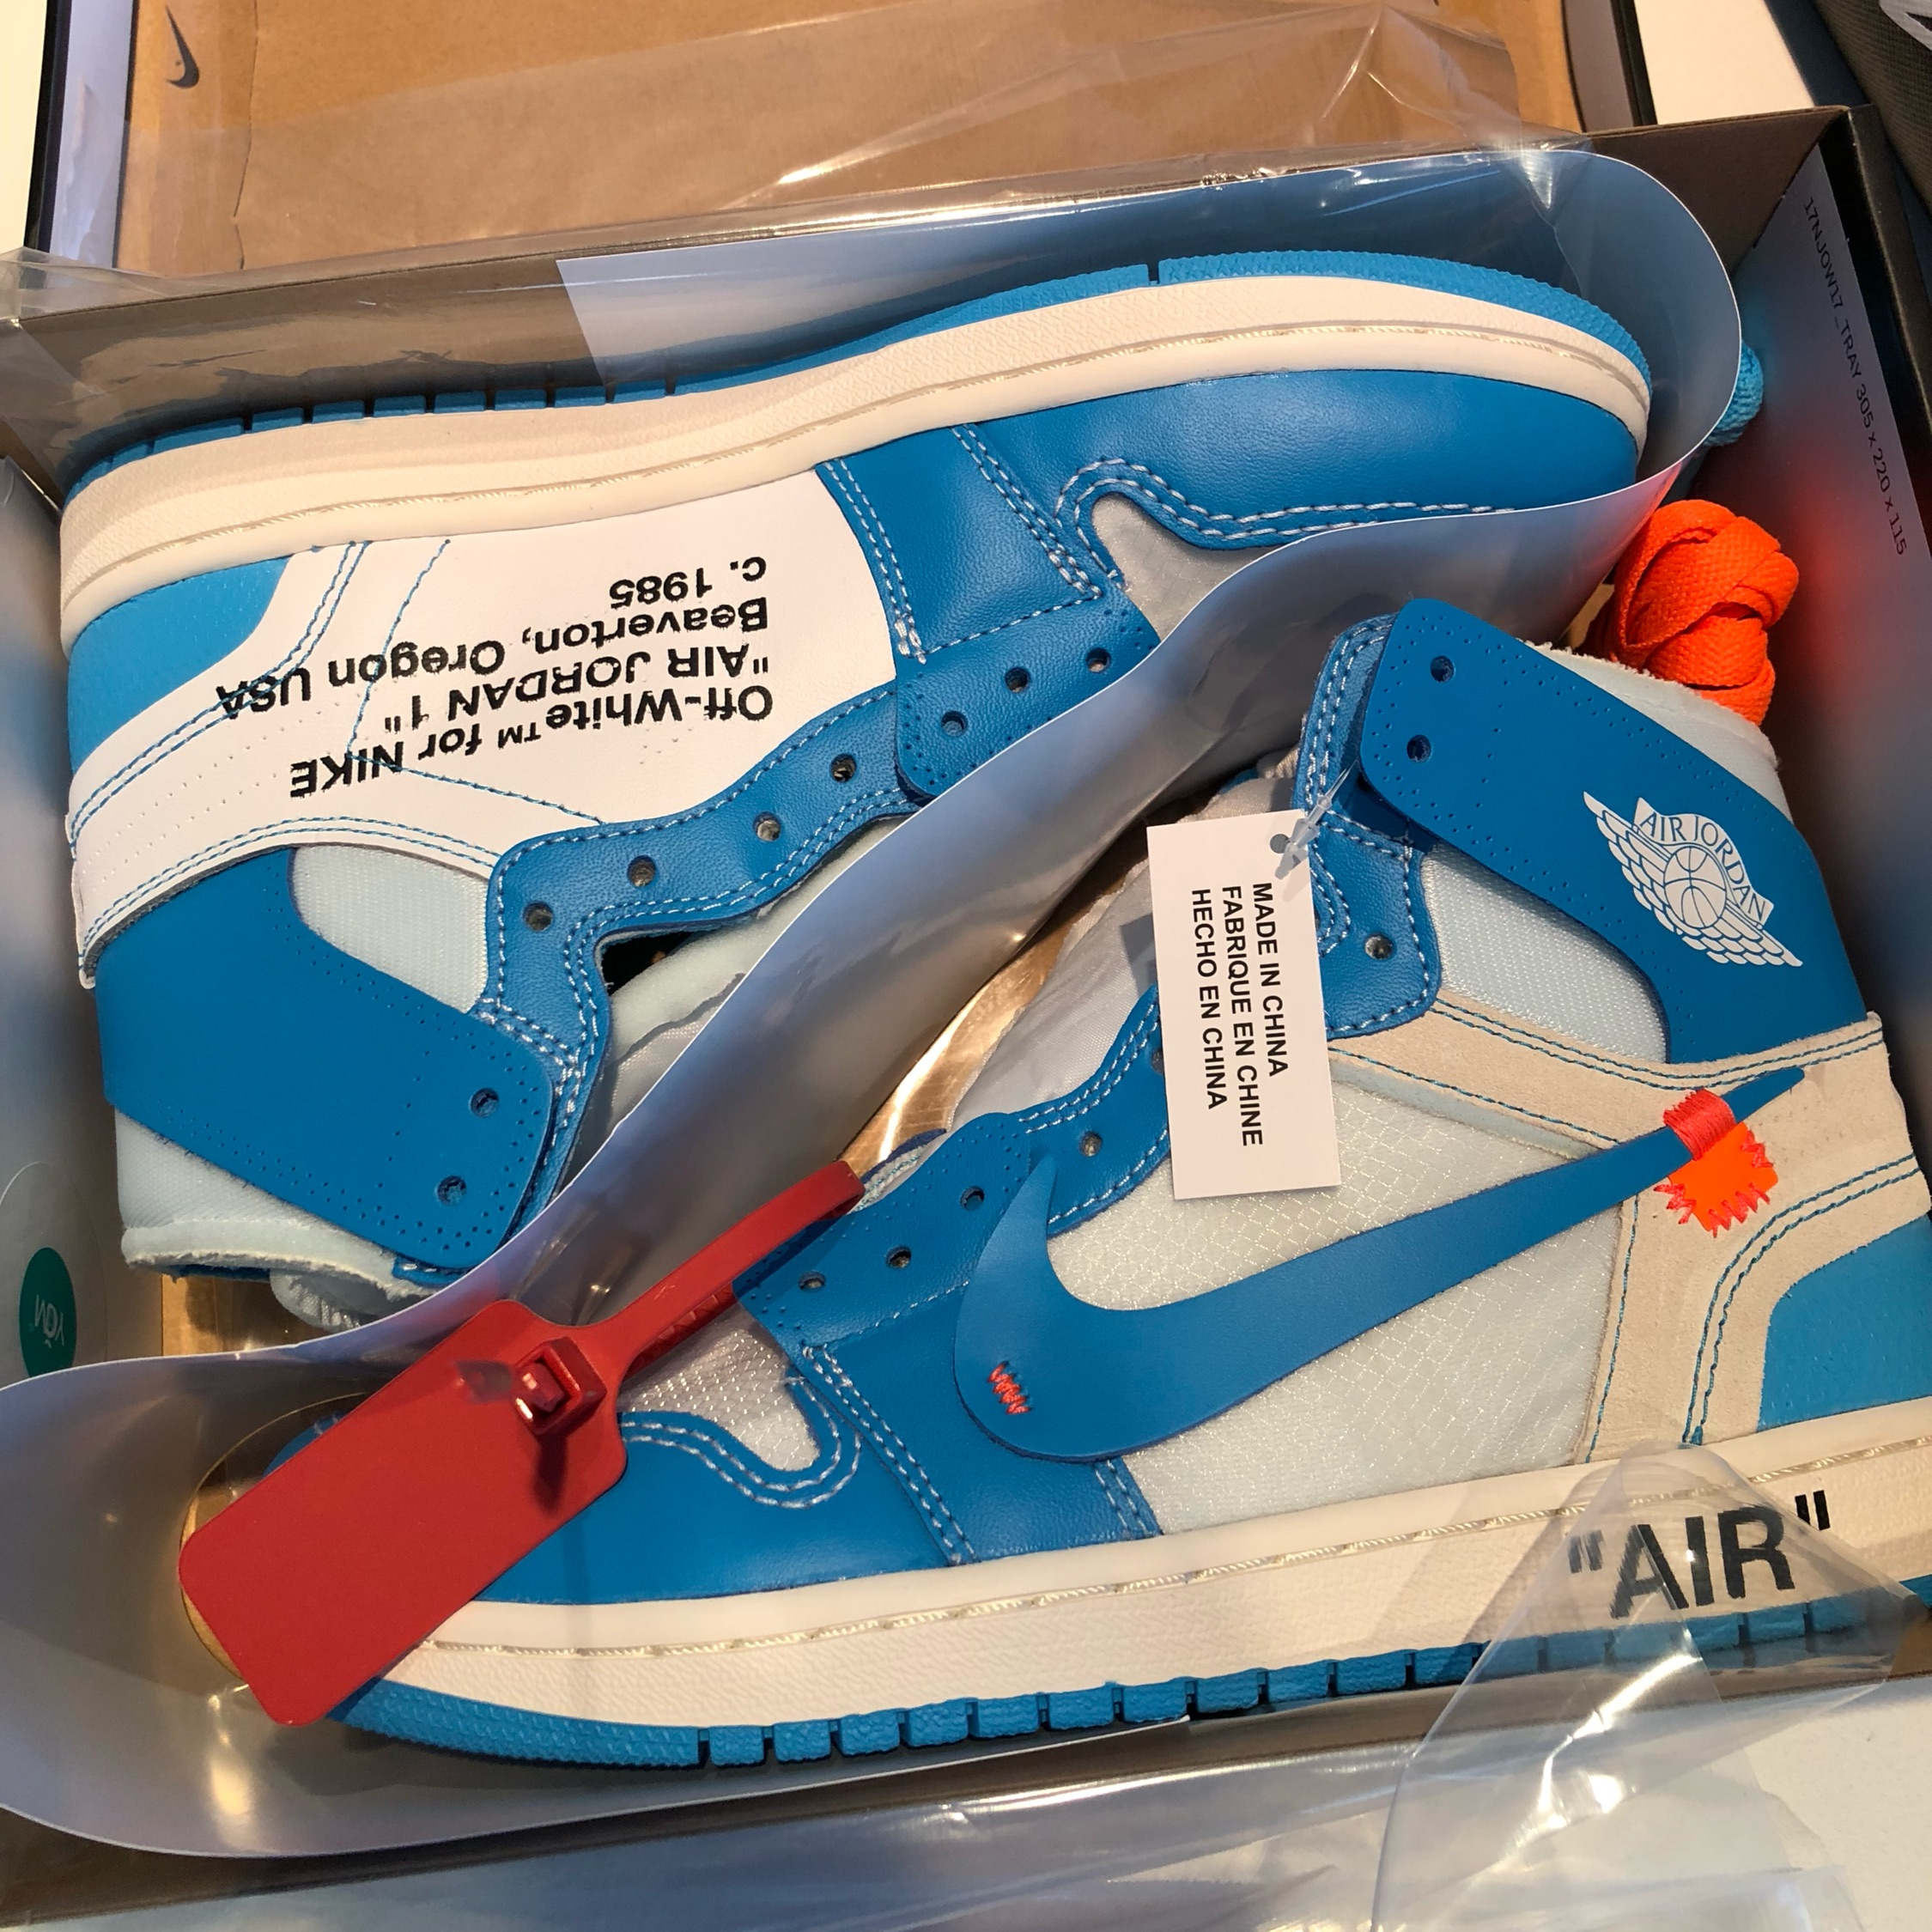 reputable site 5e2ec bdb74 Off White X Nike Air Jordan 1 Unc Us8